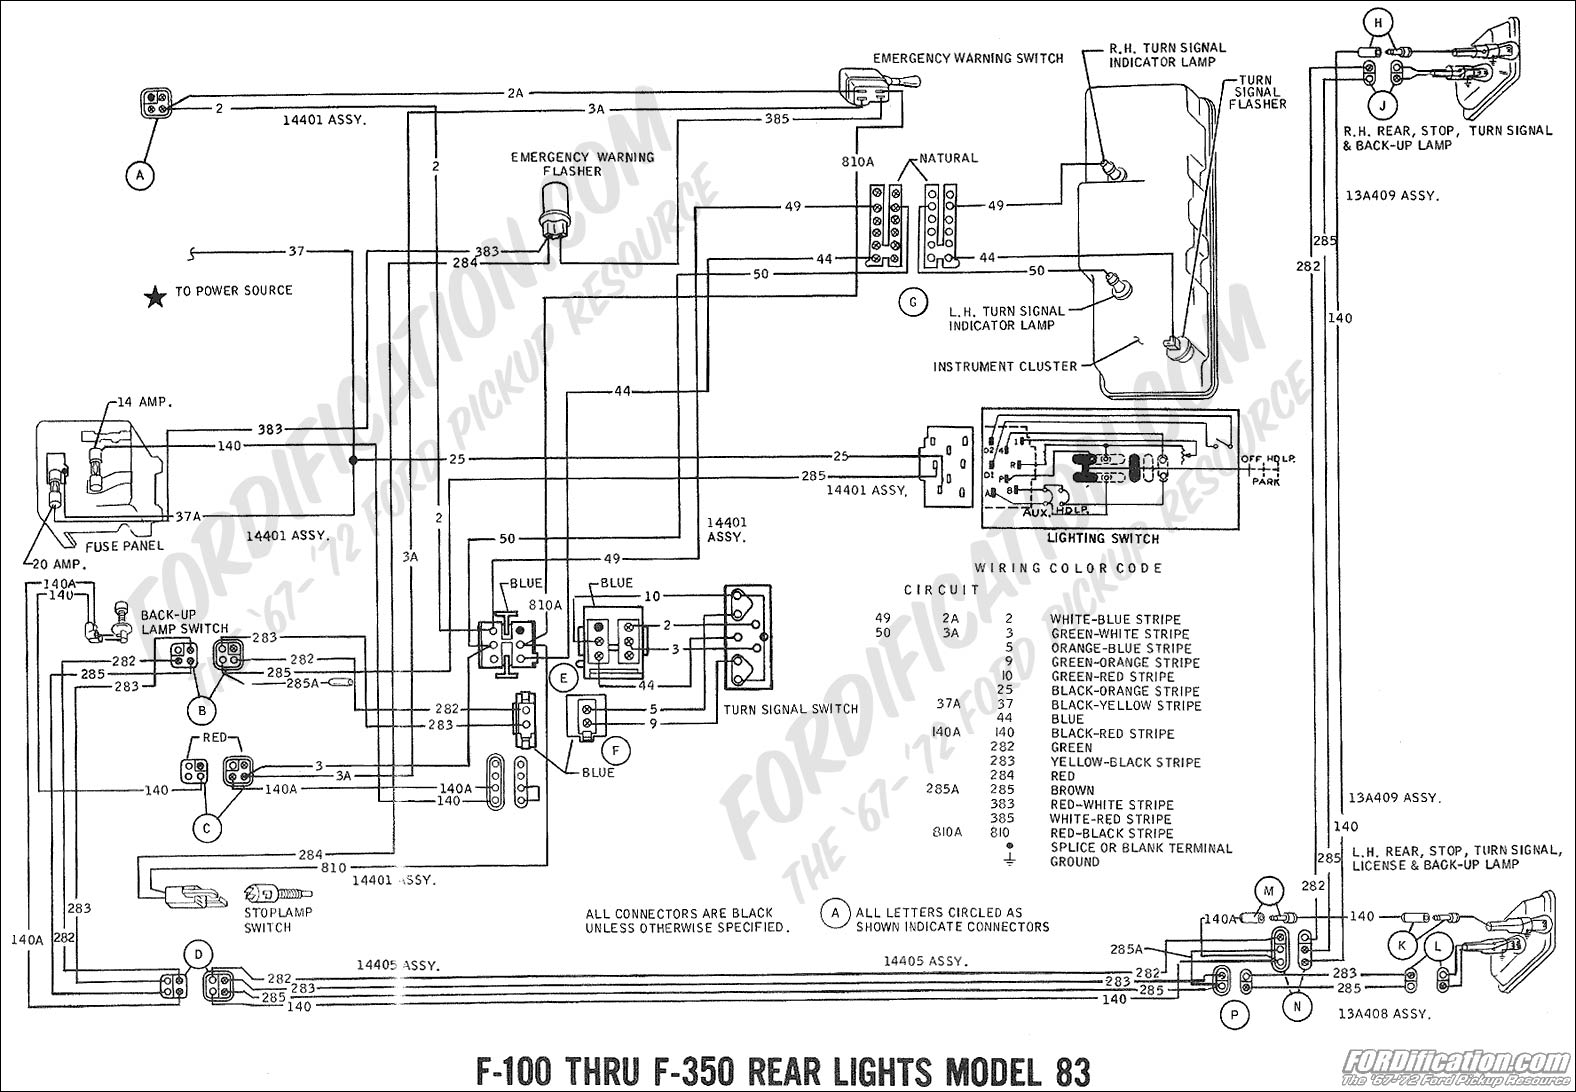 hight resolution of 1984 e150 wiring diagram wiring diagram schematics 1989 ford f 150 wiring diagram 1984 ford